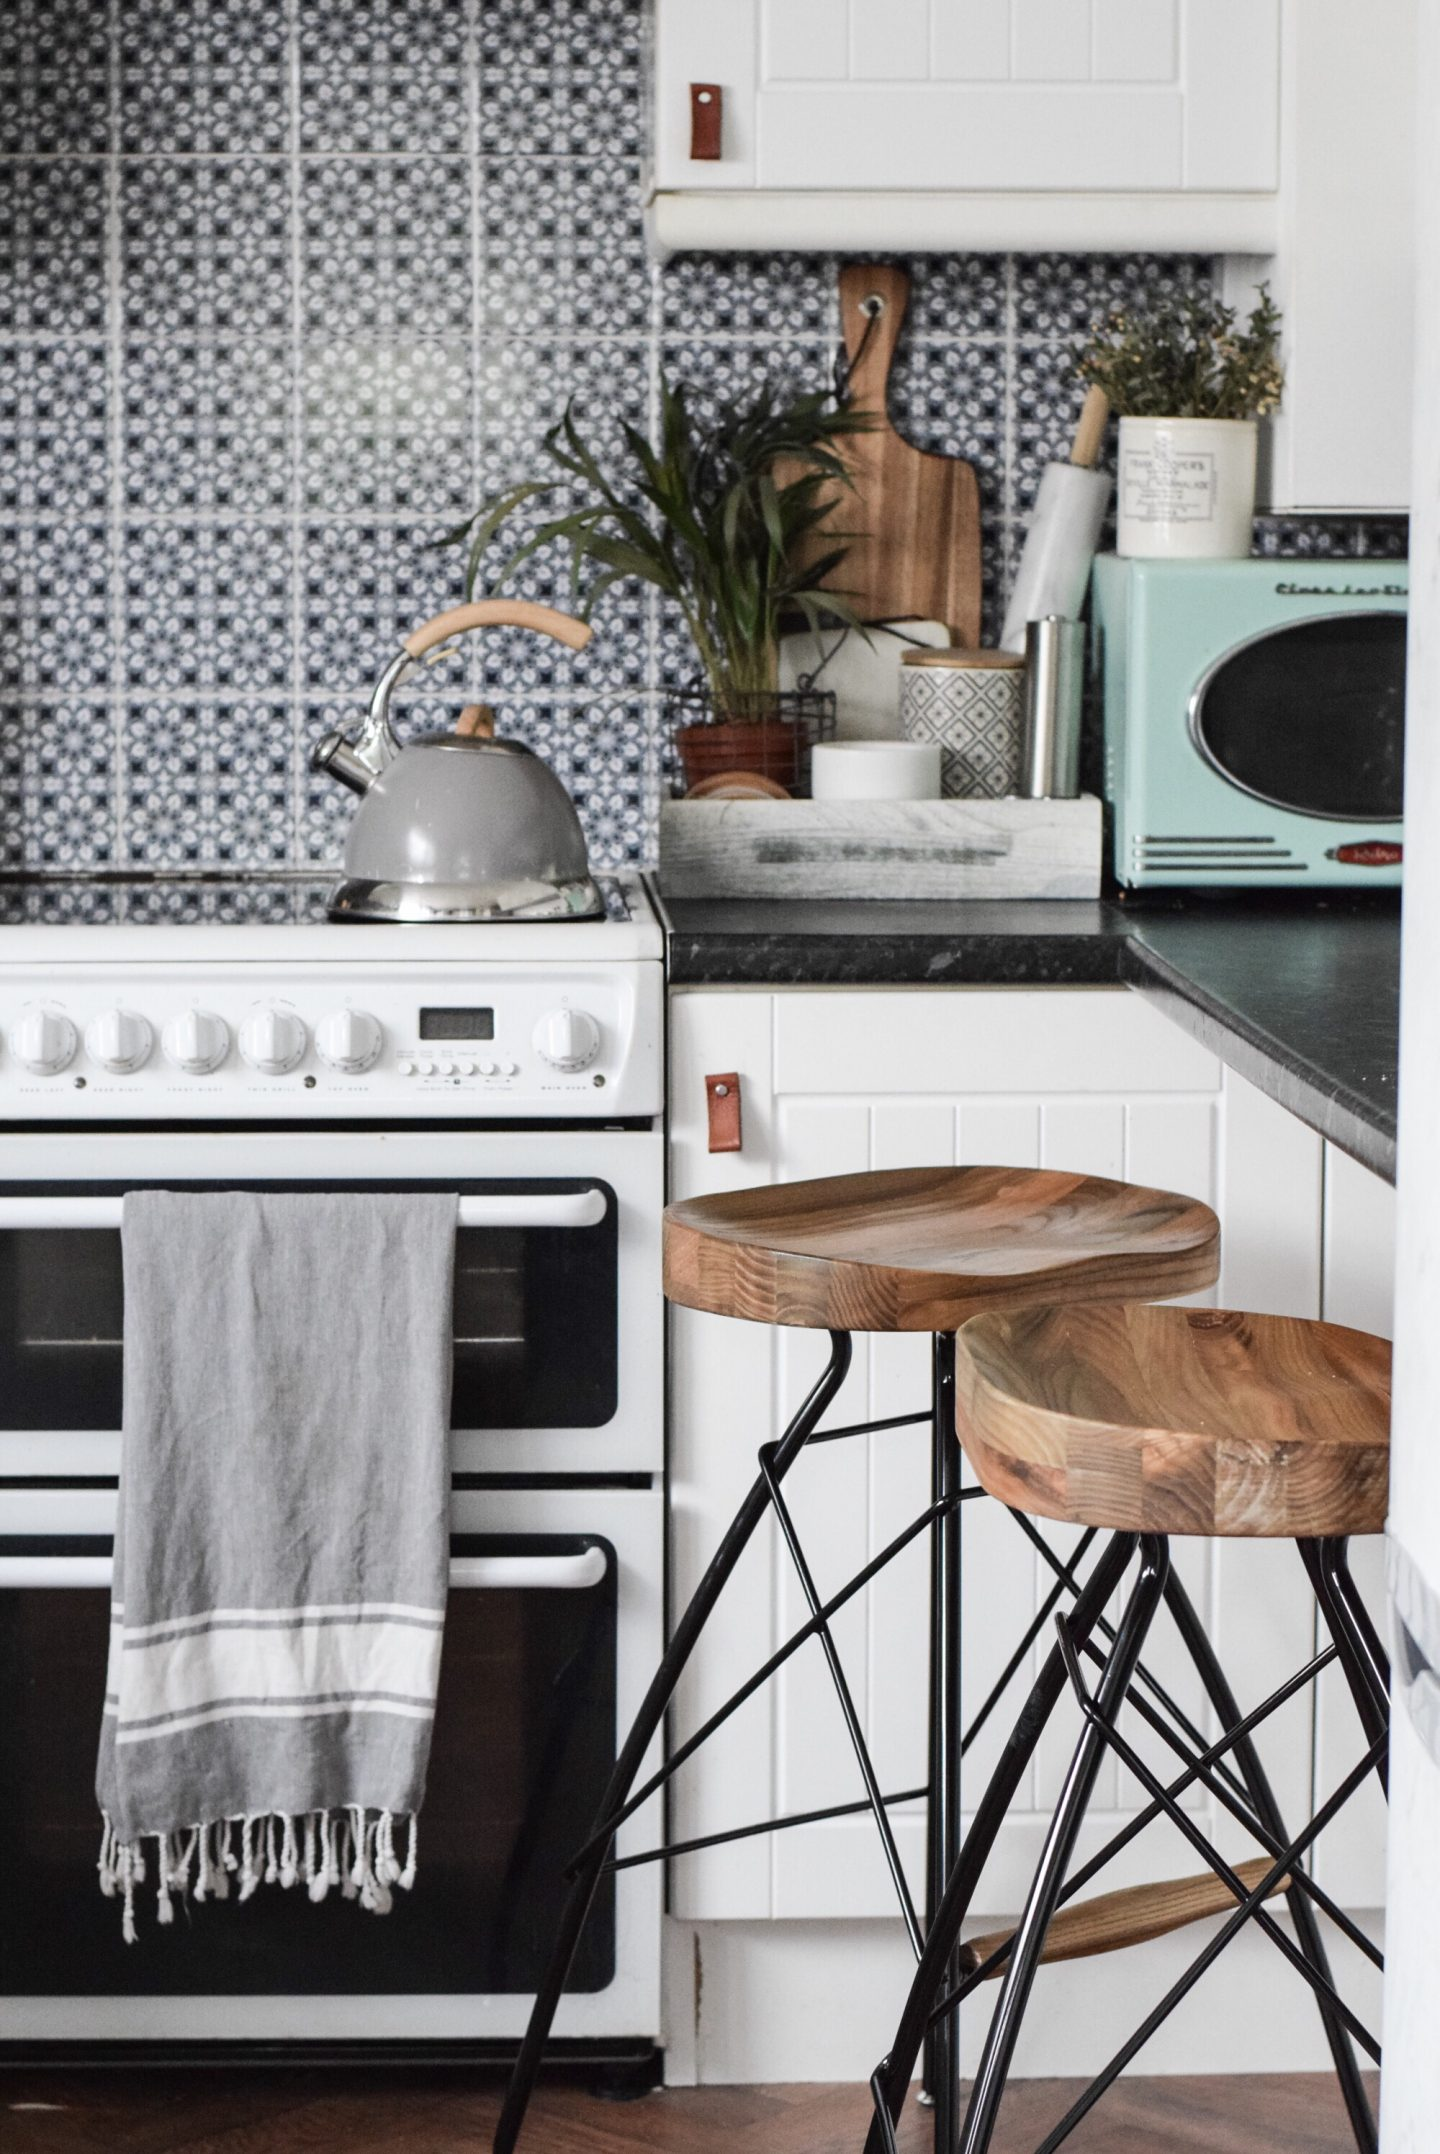 How I updated my rental kitchen…